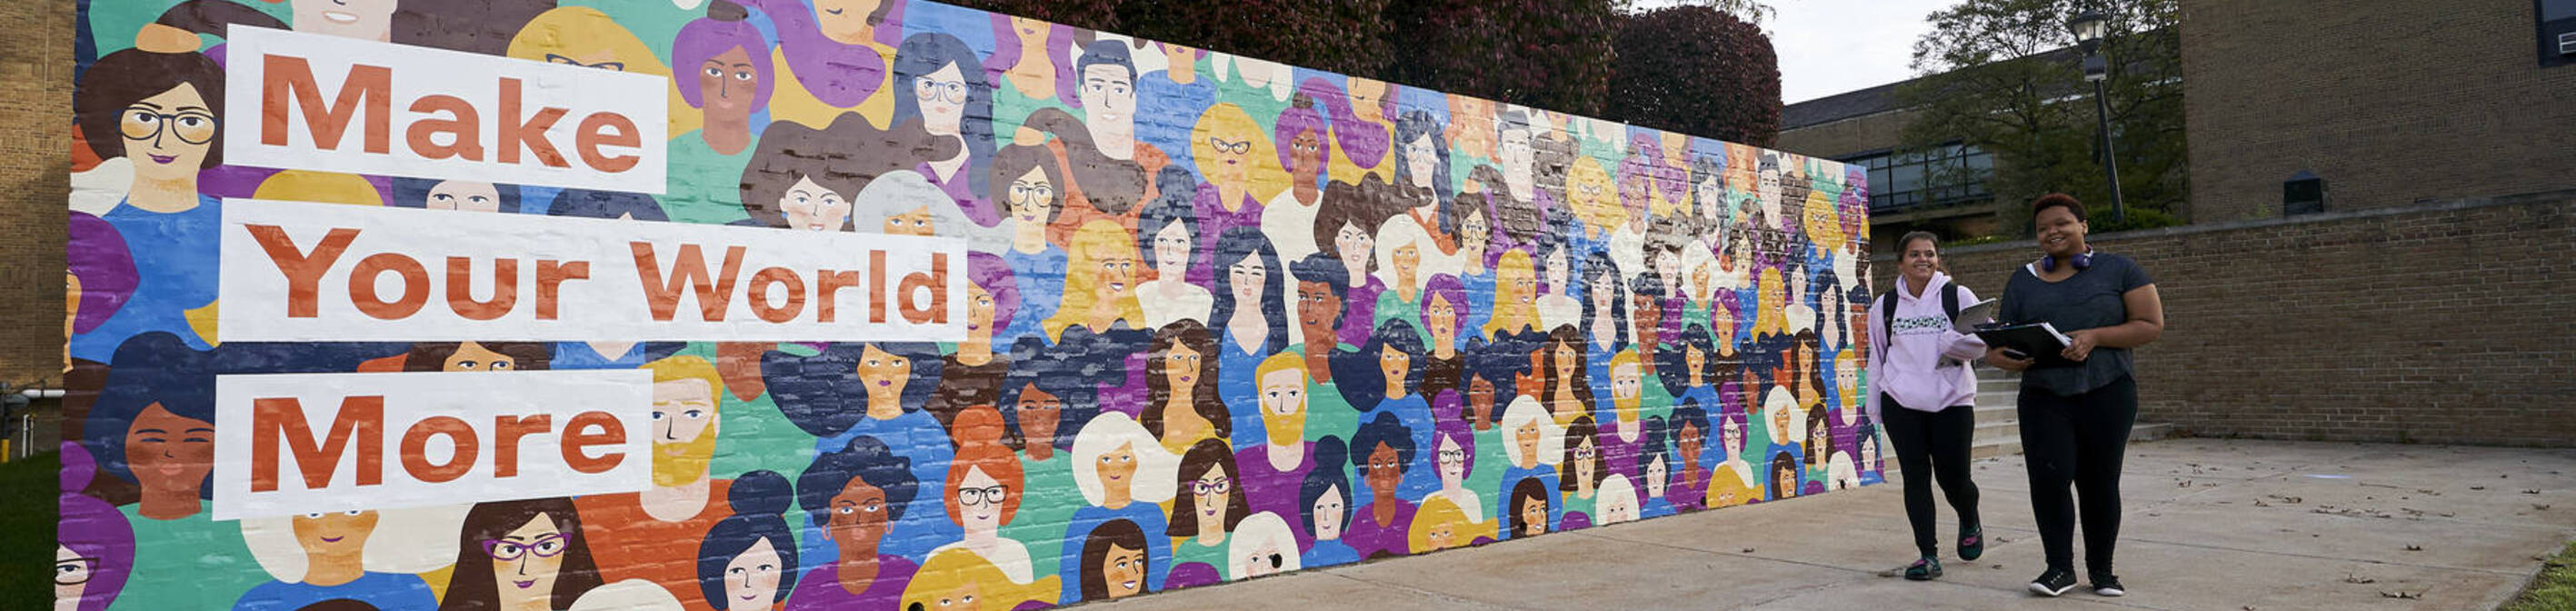 ursuline students walking by make your world more mural